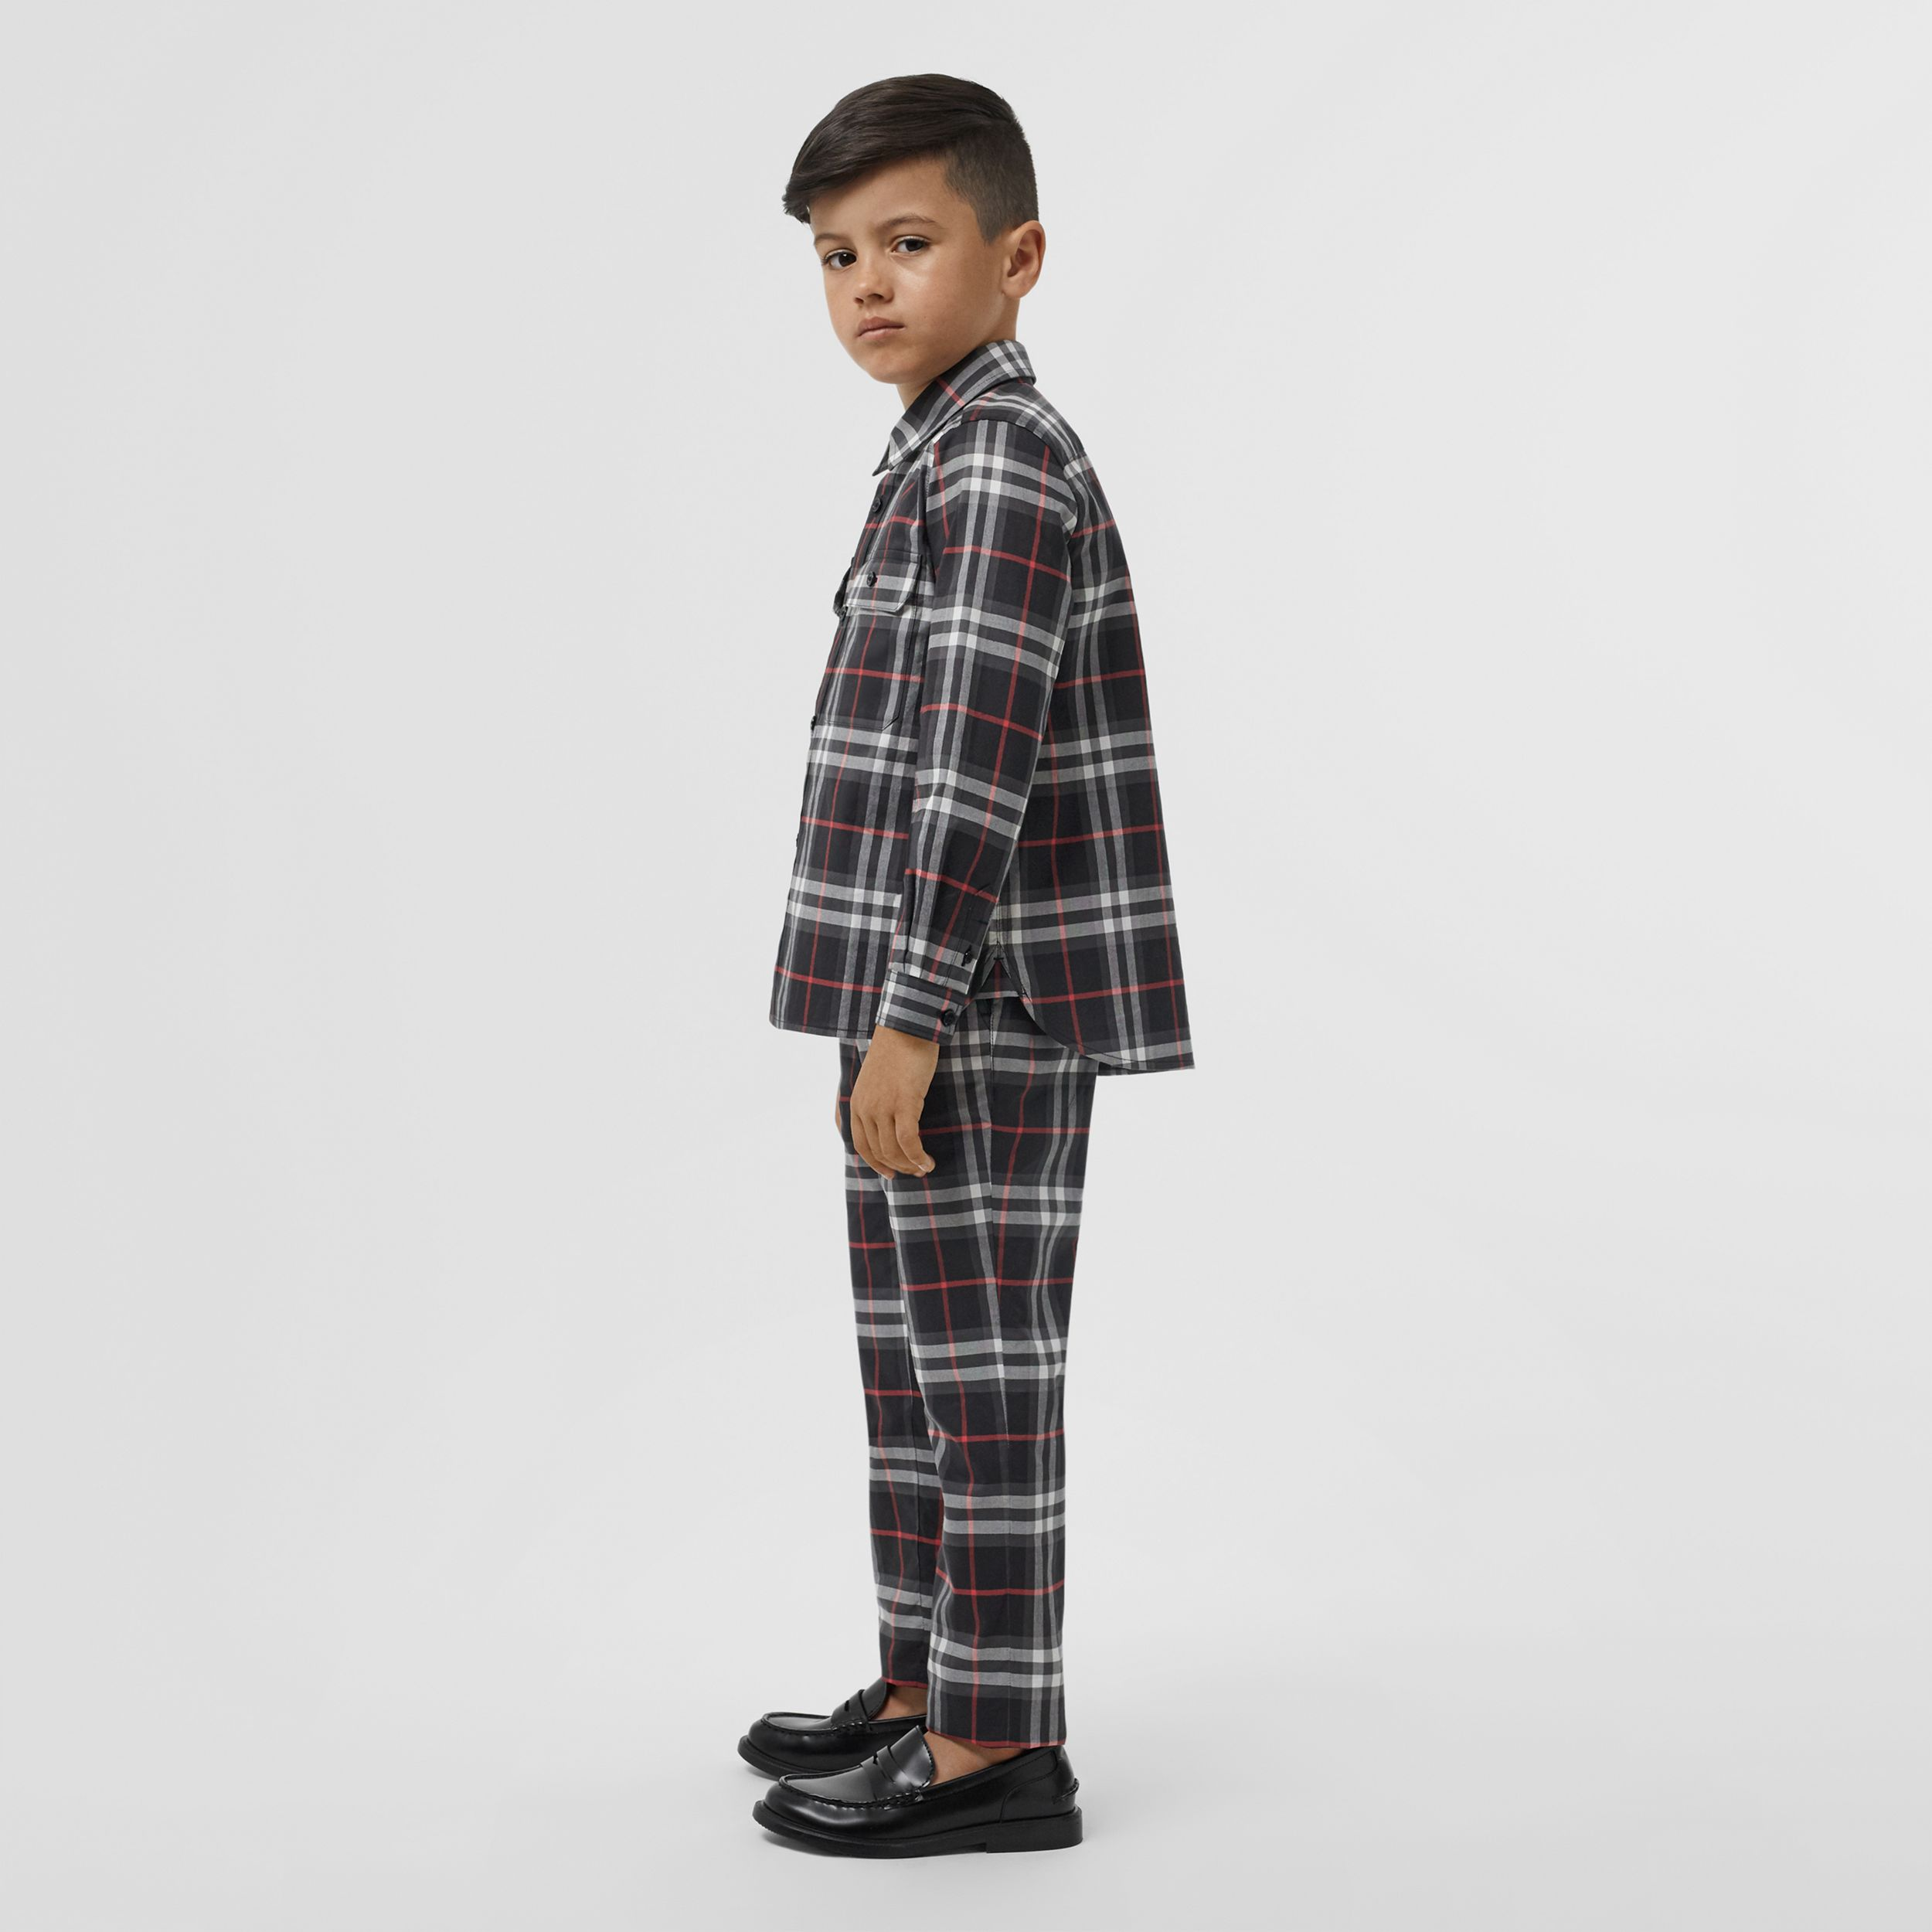 Vintage Check Cotton Shirt in Black | Burberry - 3